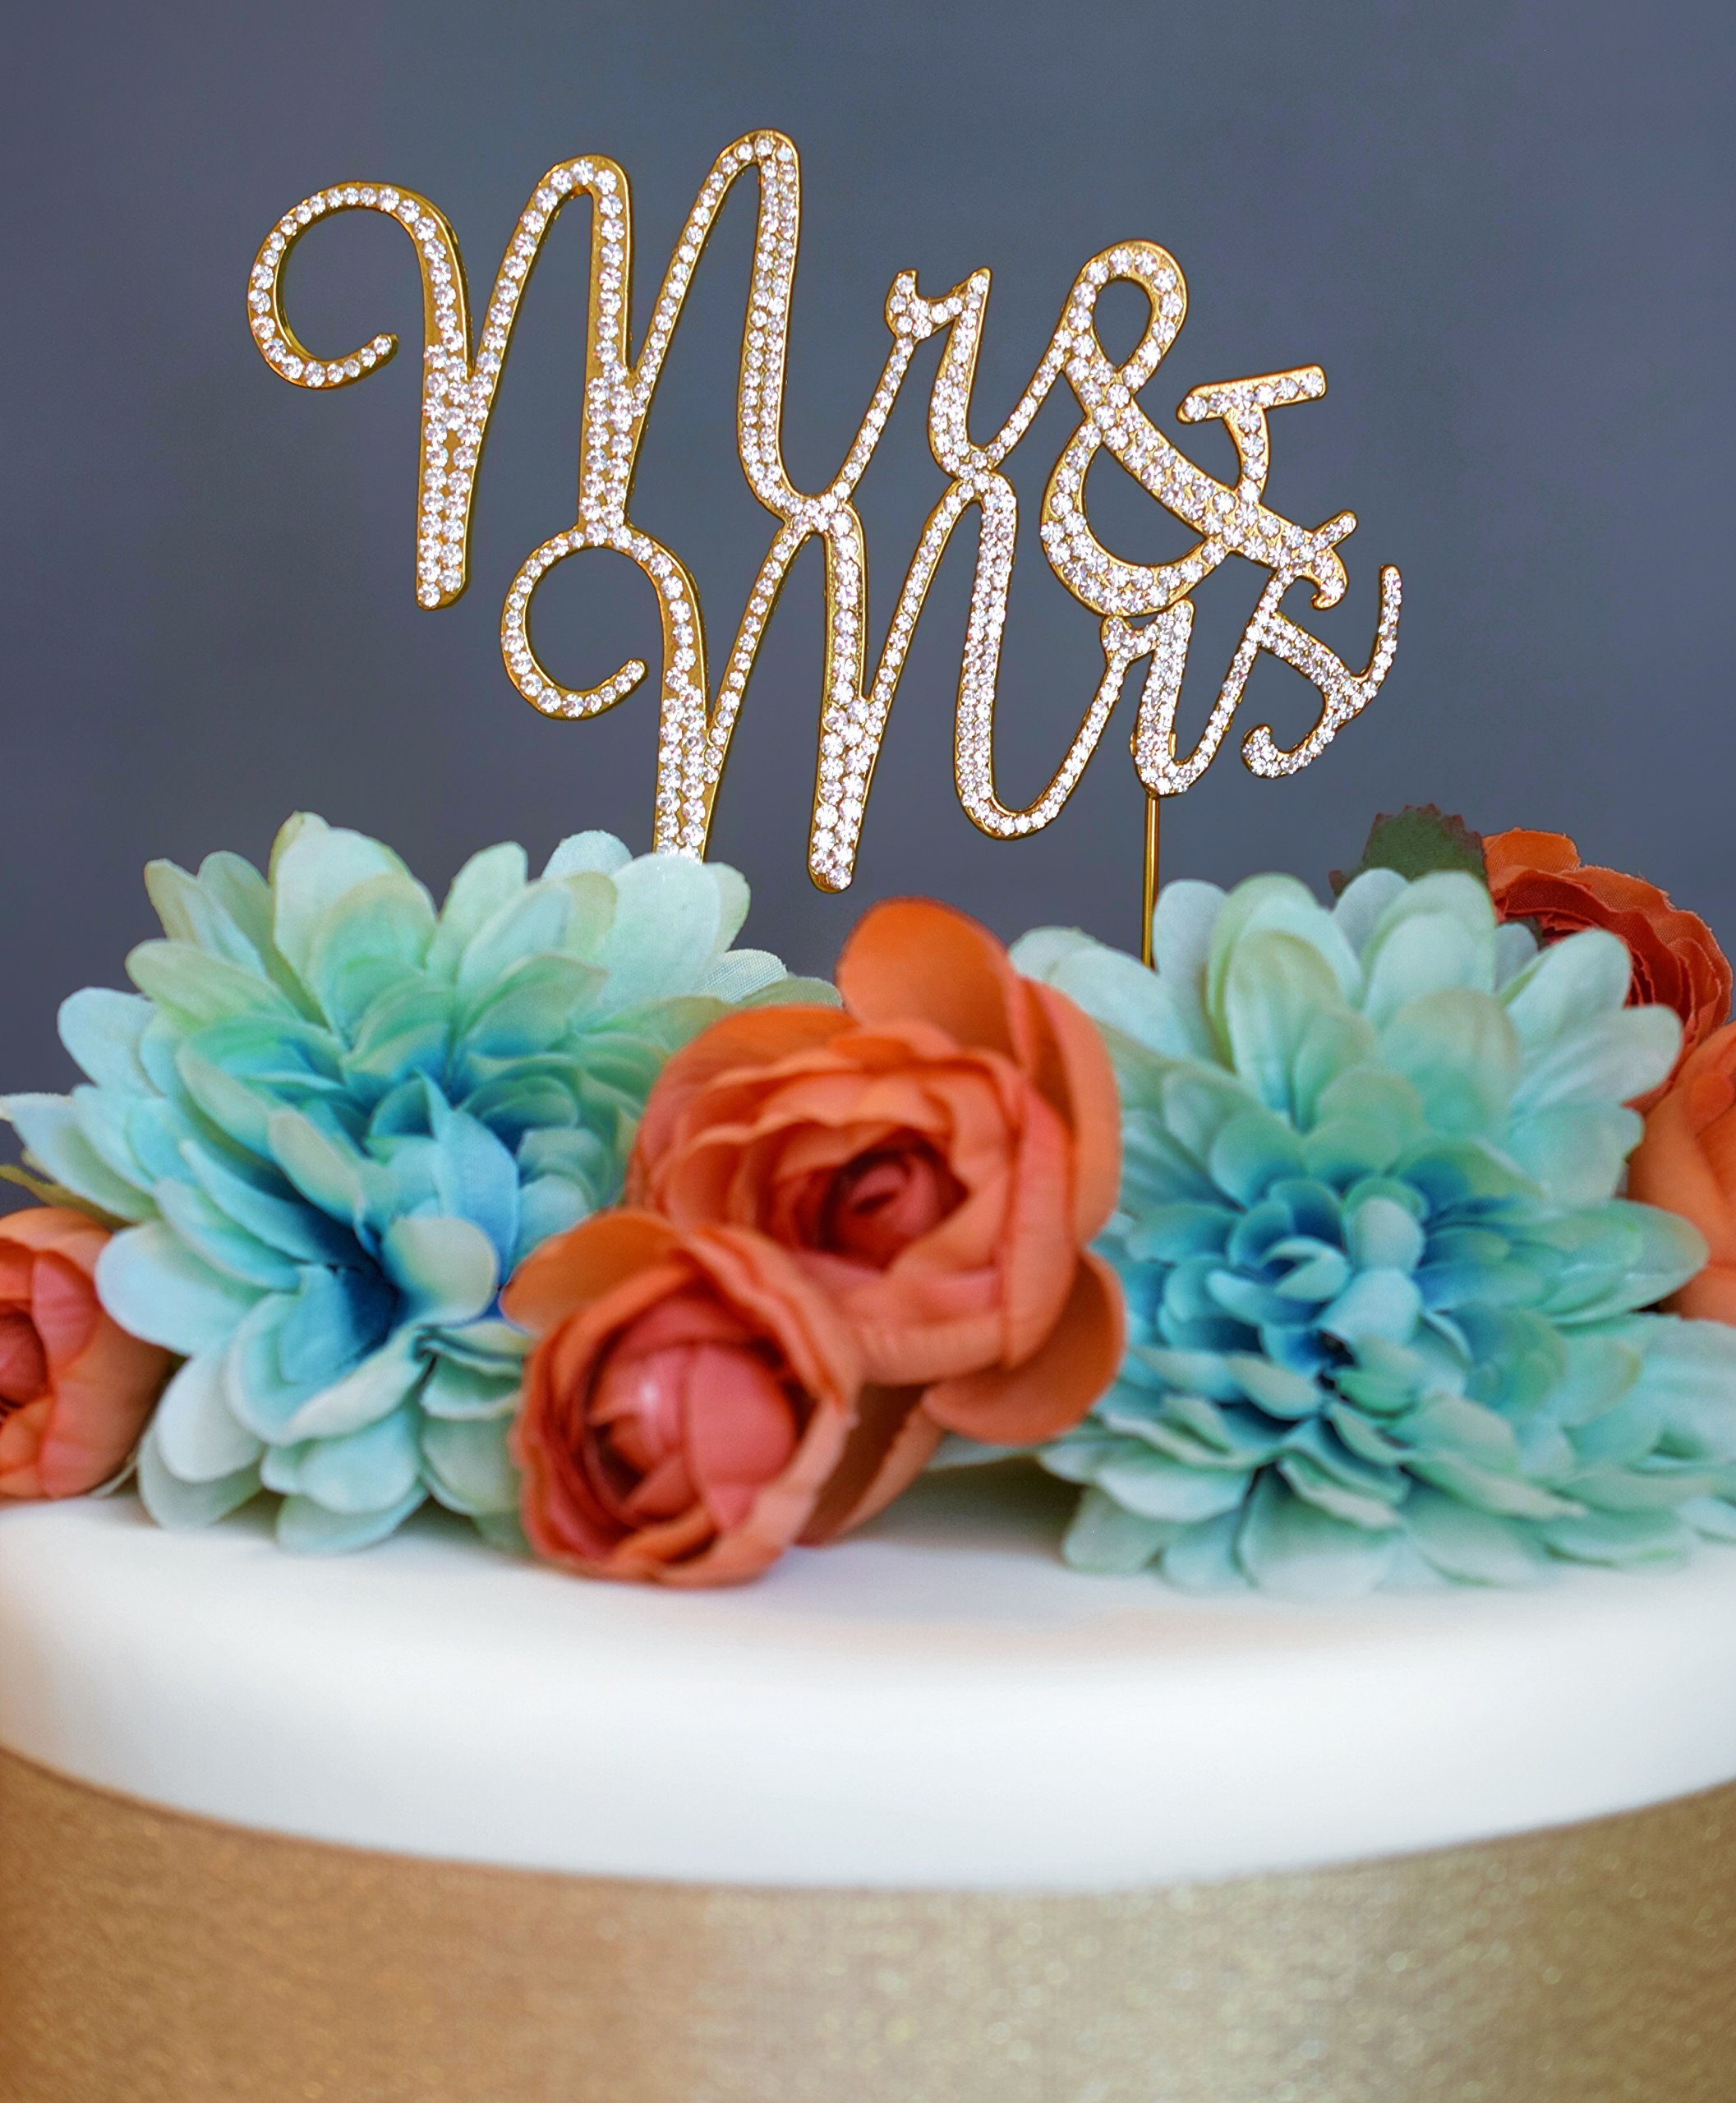 Mr and Mrs GOLD Cake Topper - Premium Crystal Rhinestones - Wedding Bridal Shower or Anniversary Cake Topper (Mr & Mrs Gold)